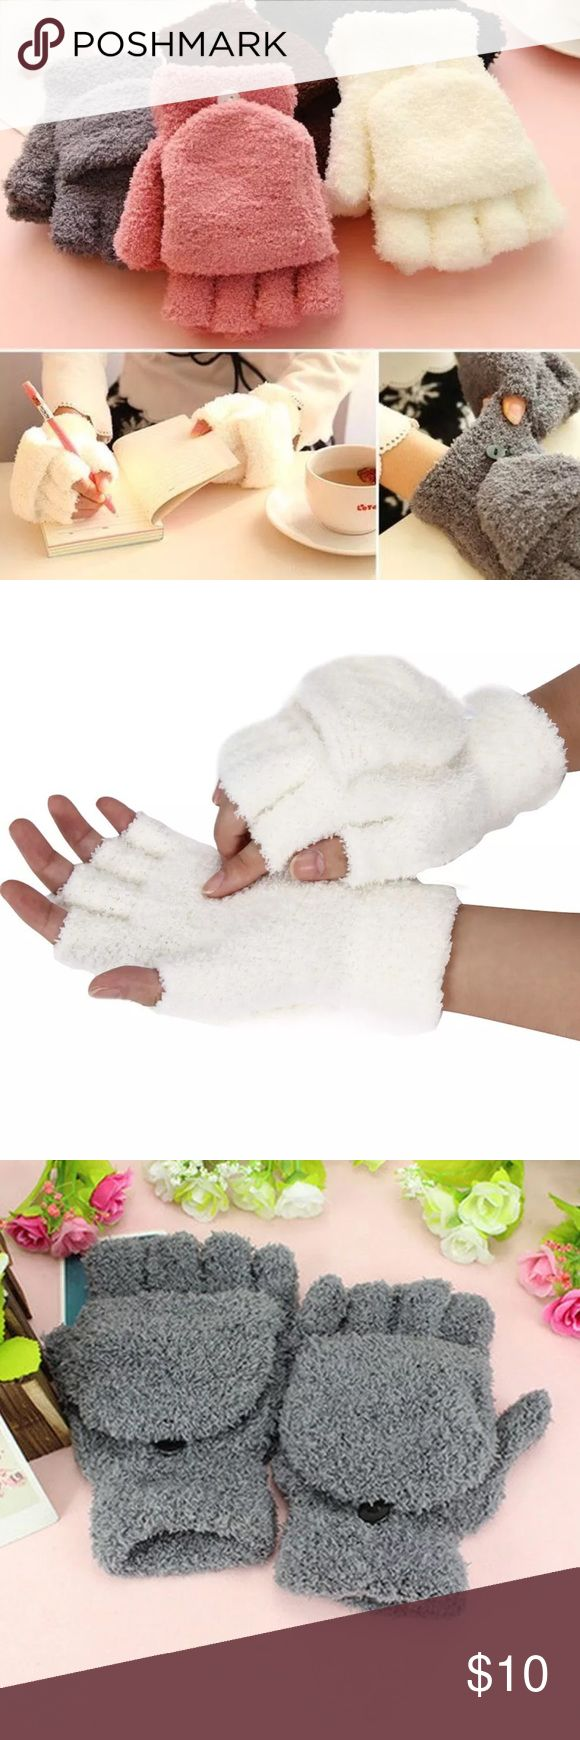 """Mitt Gloves New in package Price is for 1 pair, either gray or white/cream. Soft feather velvet construction provides lasting comfort. Wrist-length. One size fits most. Button holds the flap down when not in use. Keeps your fingers warm and can still function conveniently ✔️ Wrist wide: Approx. 8/3.15""""  ✔️ Palm wide: Approx. 8/3.15""""  ✔️ Length: Approx. 17/6.69""""  Colors: Beige or gray    ❌ No Trades Accessories Gloves & Mittens"""